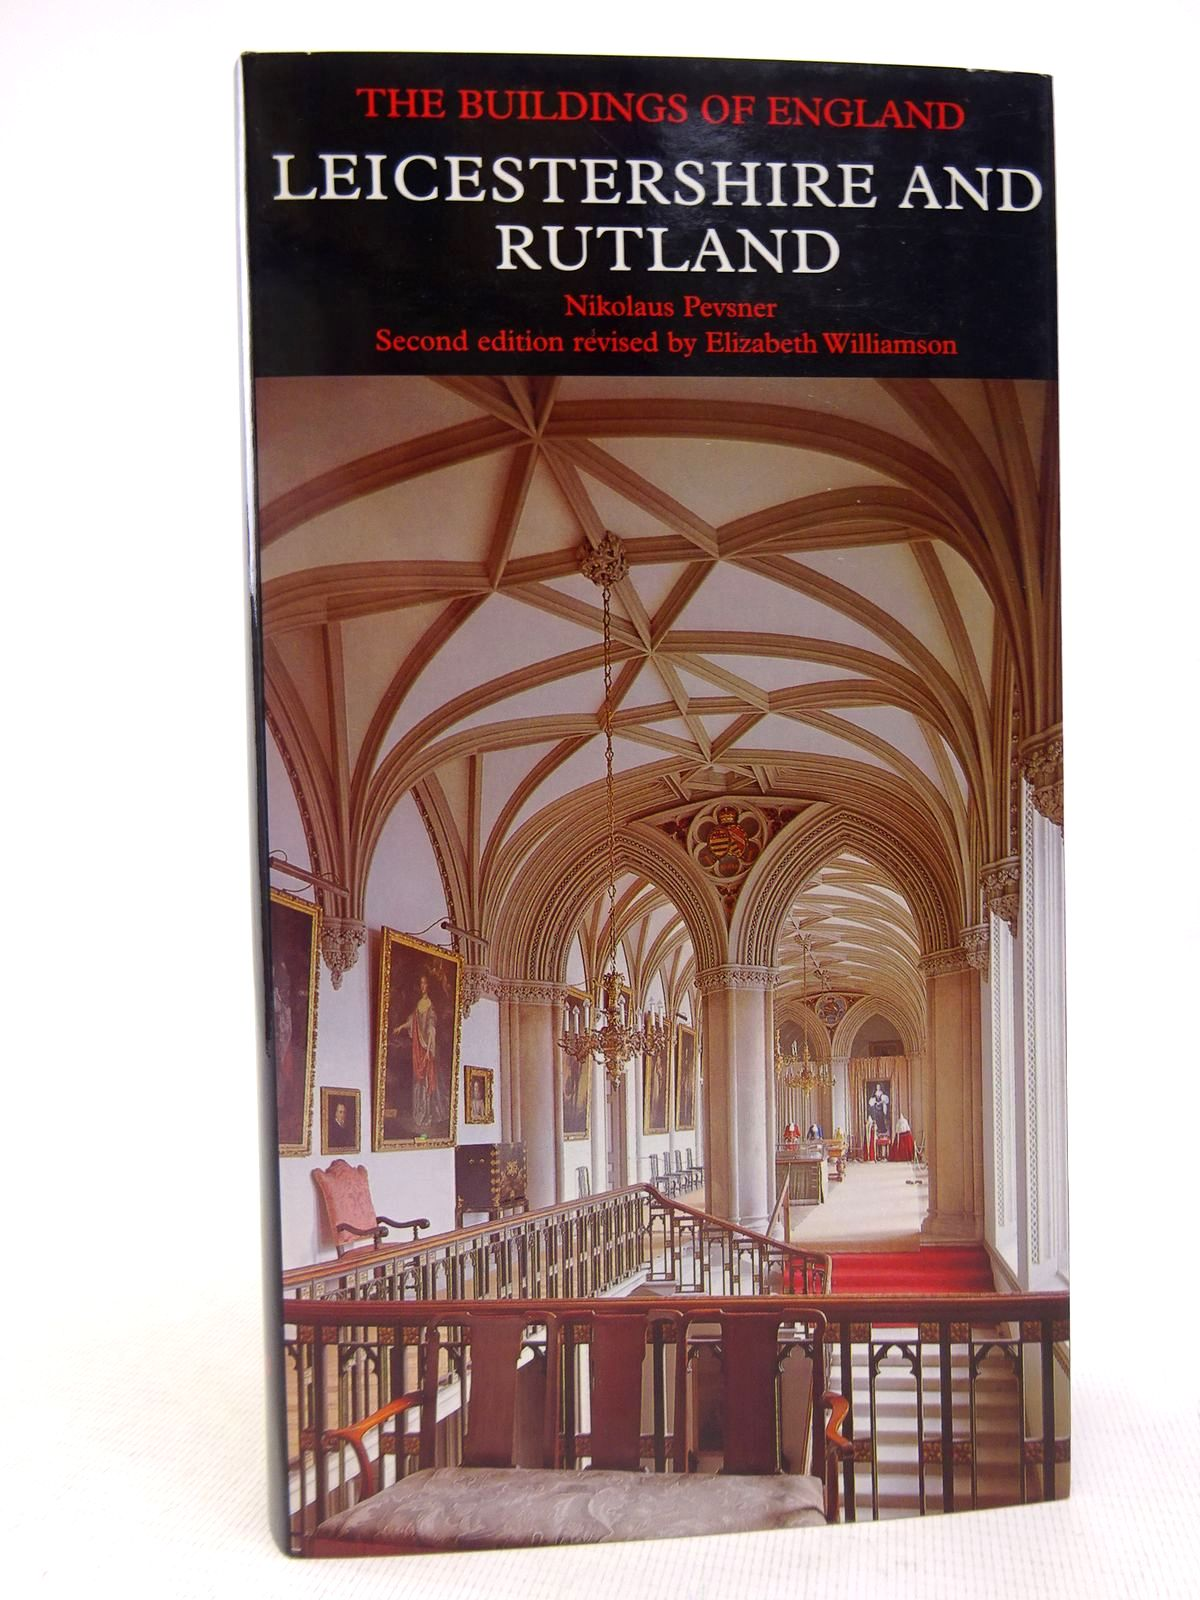 Photo of LEICESTERSHIRE AND RUTLAND (BUILDINGS OF ENGLAND) written by Pevsner, Nikolaus Williamson, Elizabeth Brandwood, Geoffrey K. published by Yale University Press (STOCK CODE: 1816897)  for sale by Stella & Rose's Books